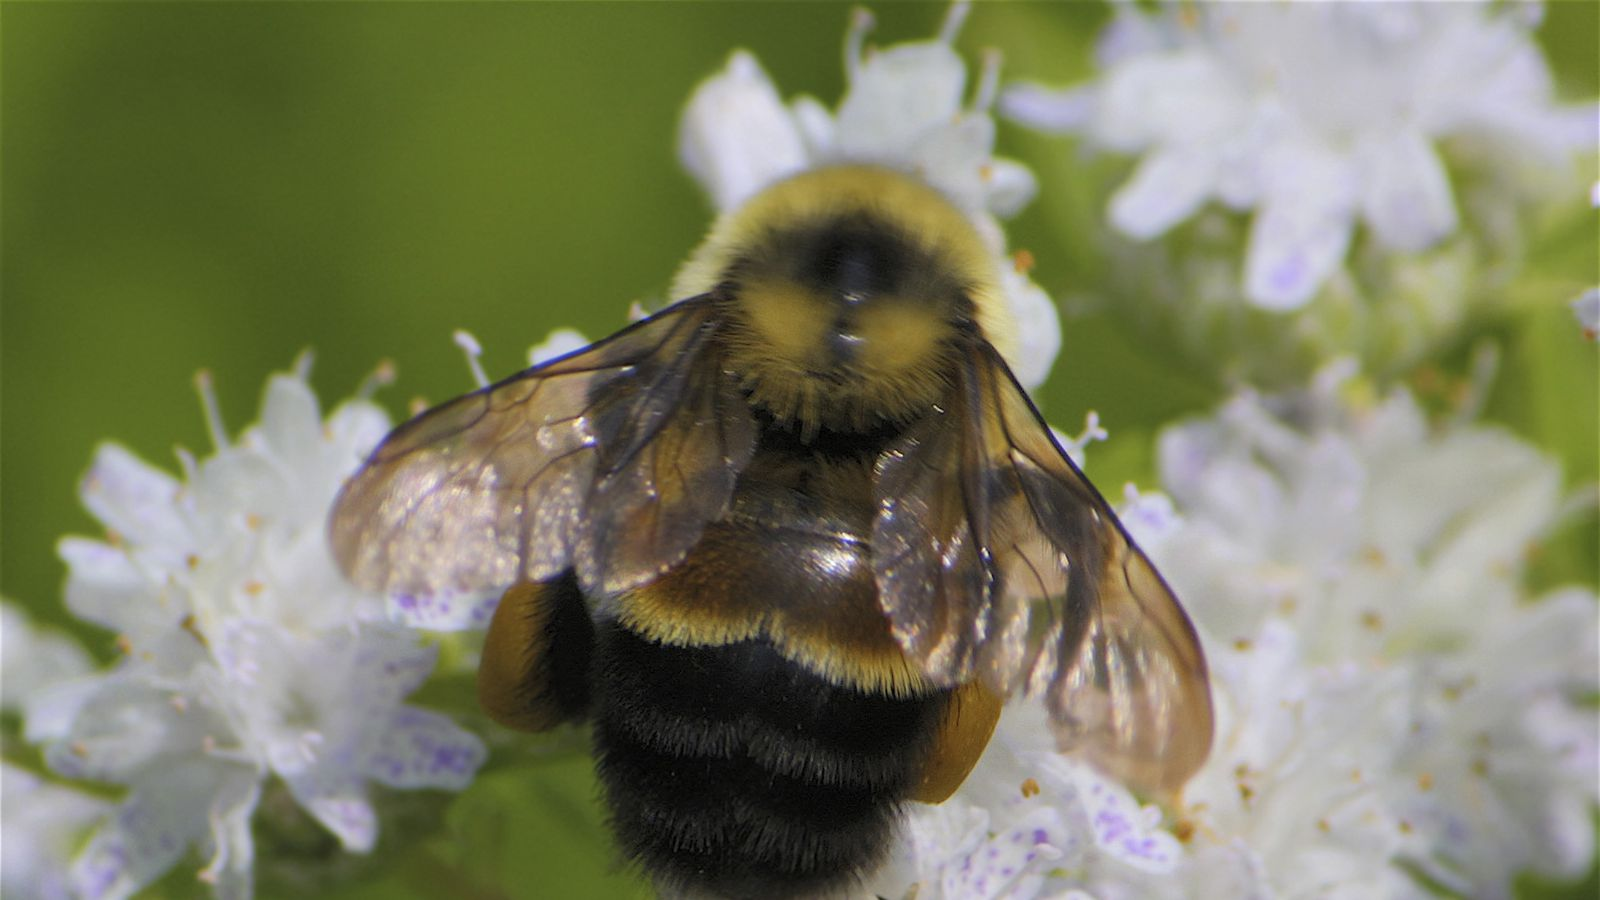 The Rusty Patched Midwestern Bumblebee Is Now Endangered The Verge